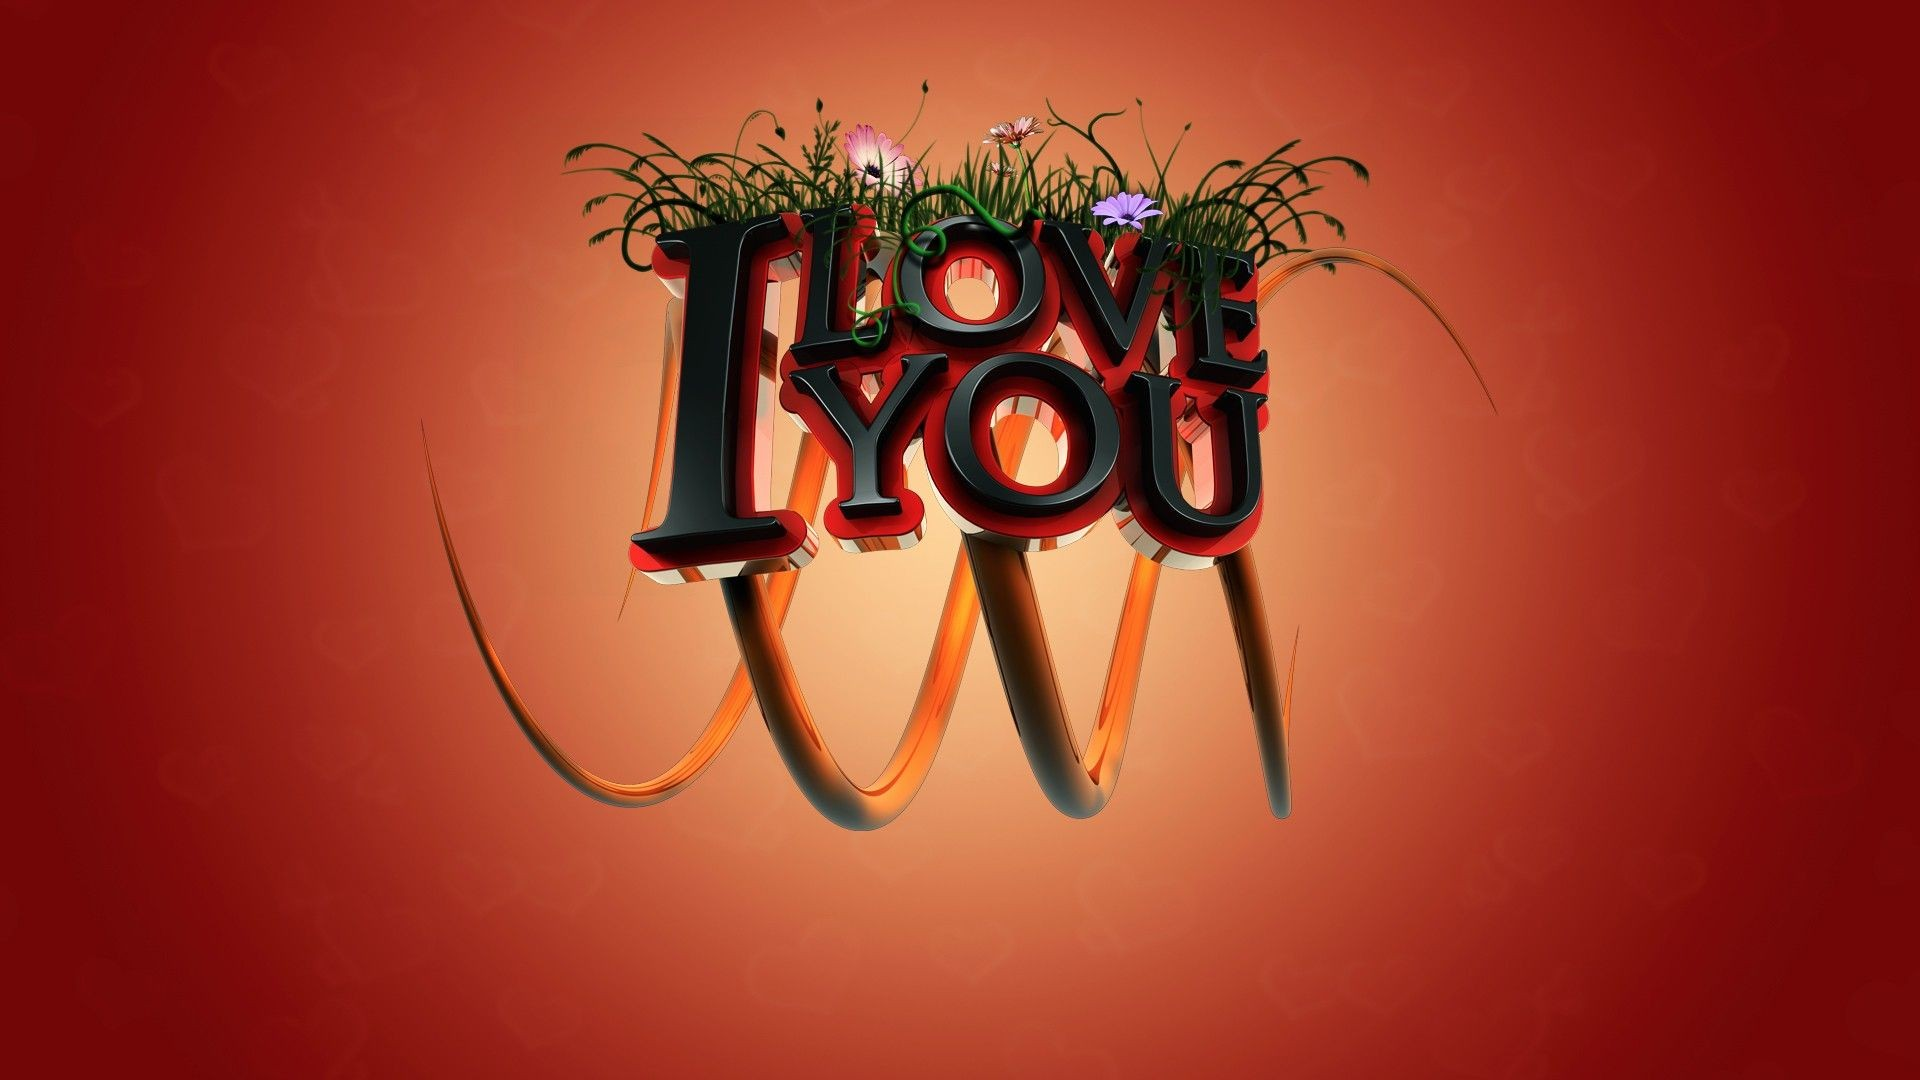 I love you typo hd typography 4k wallpapers images - I love you 4k ...